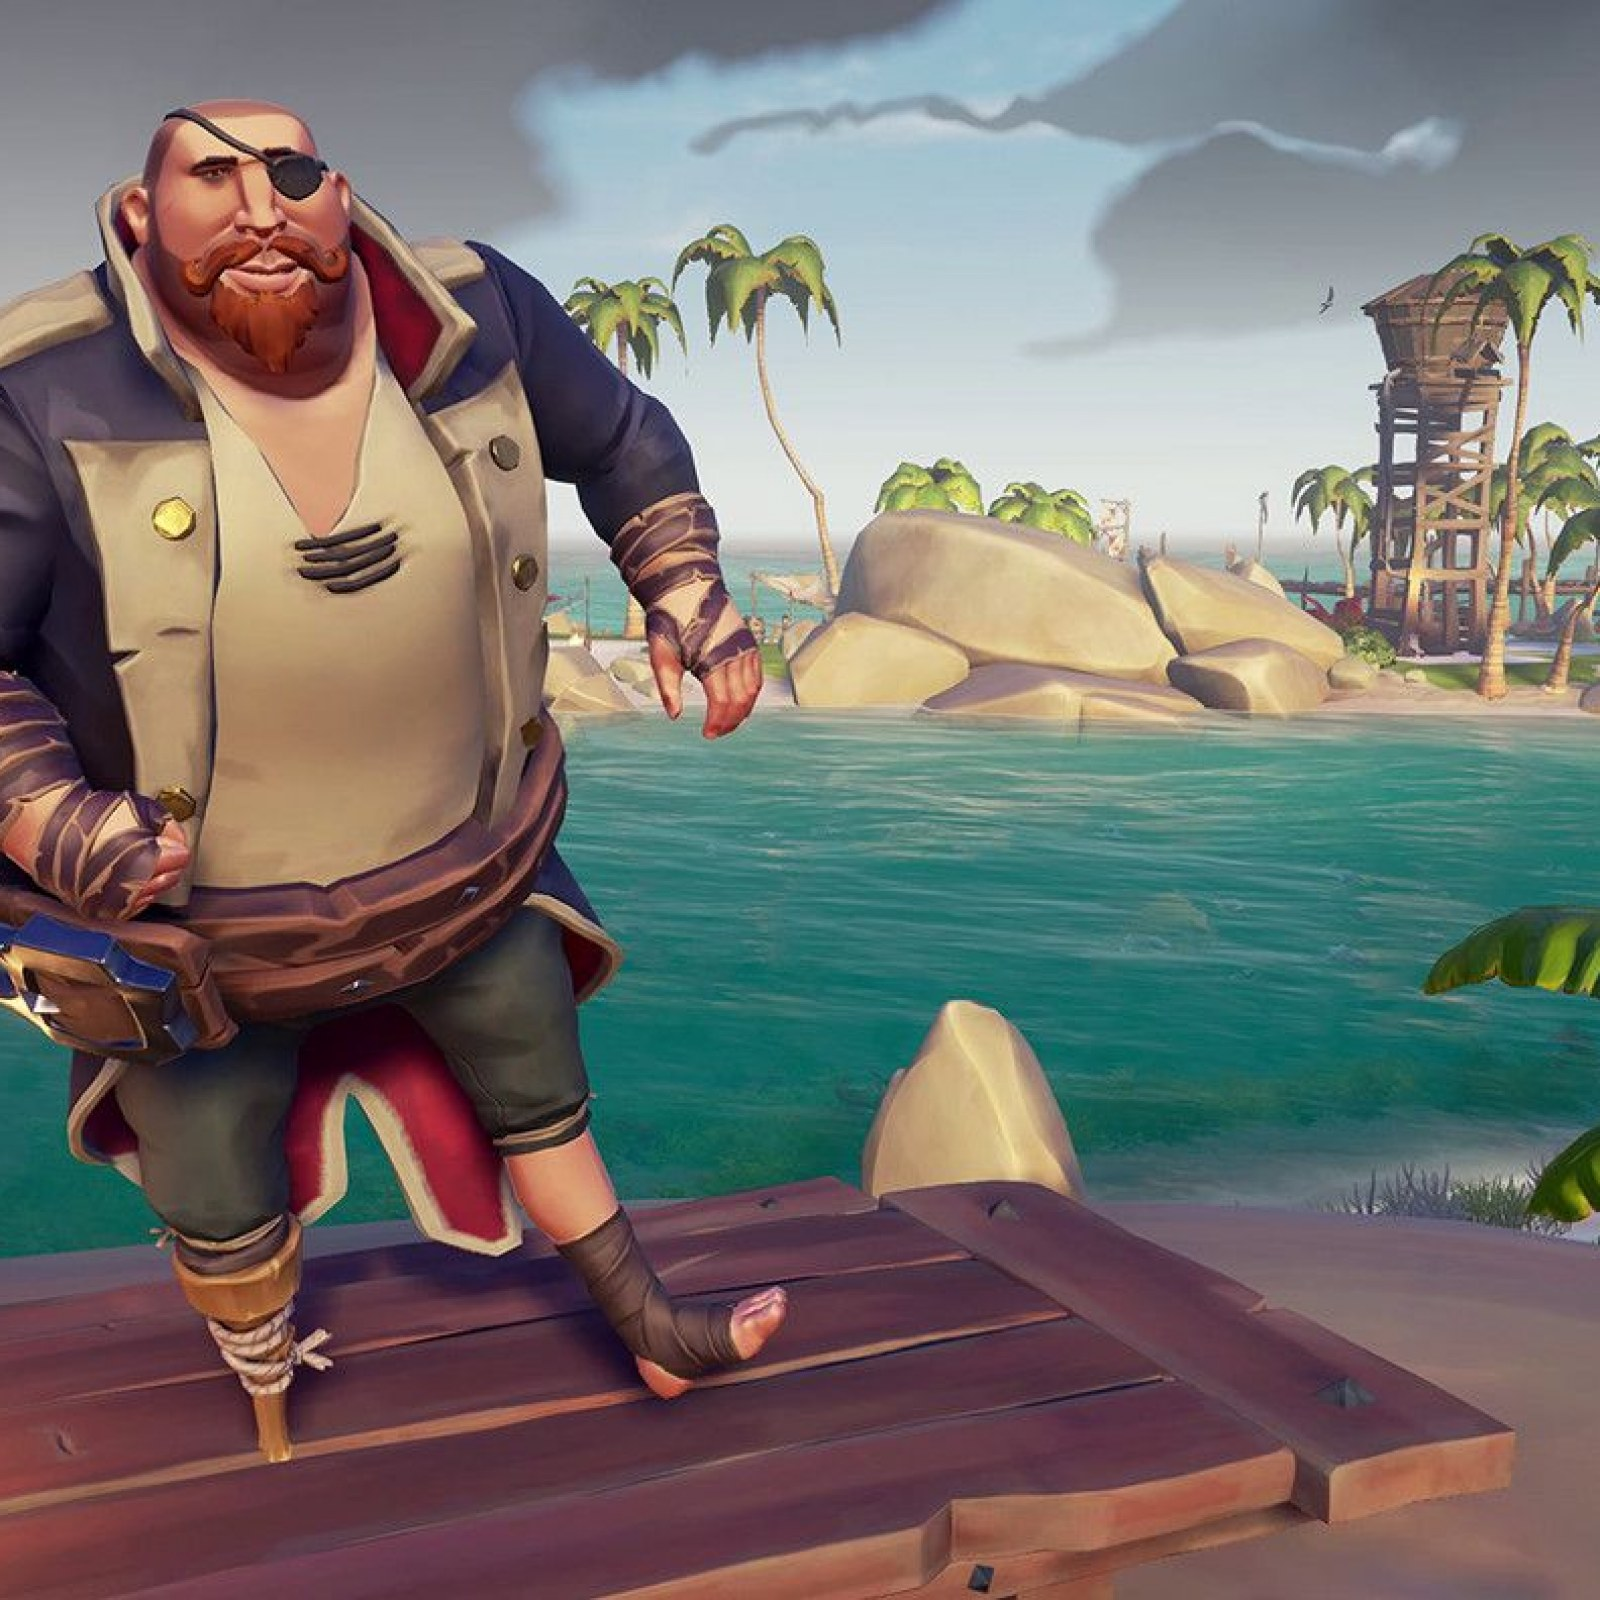 Sea of Thieves' Beard Error Meaning: How to Fix Kiwi, Lavender